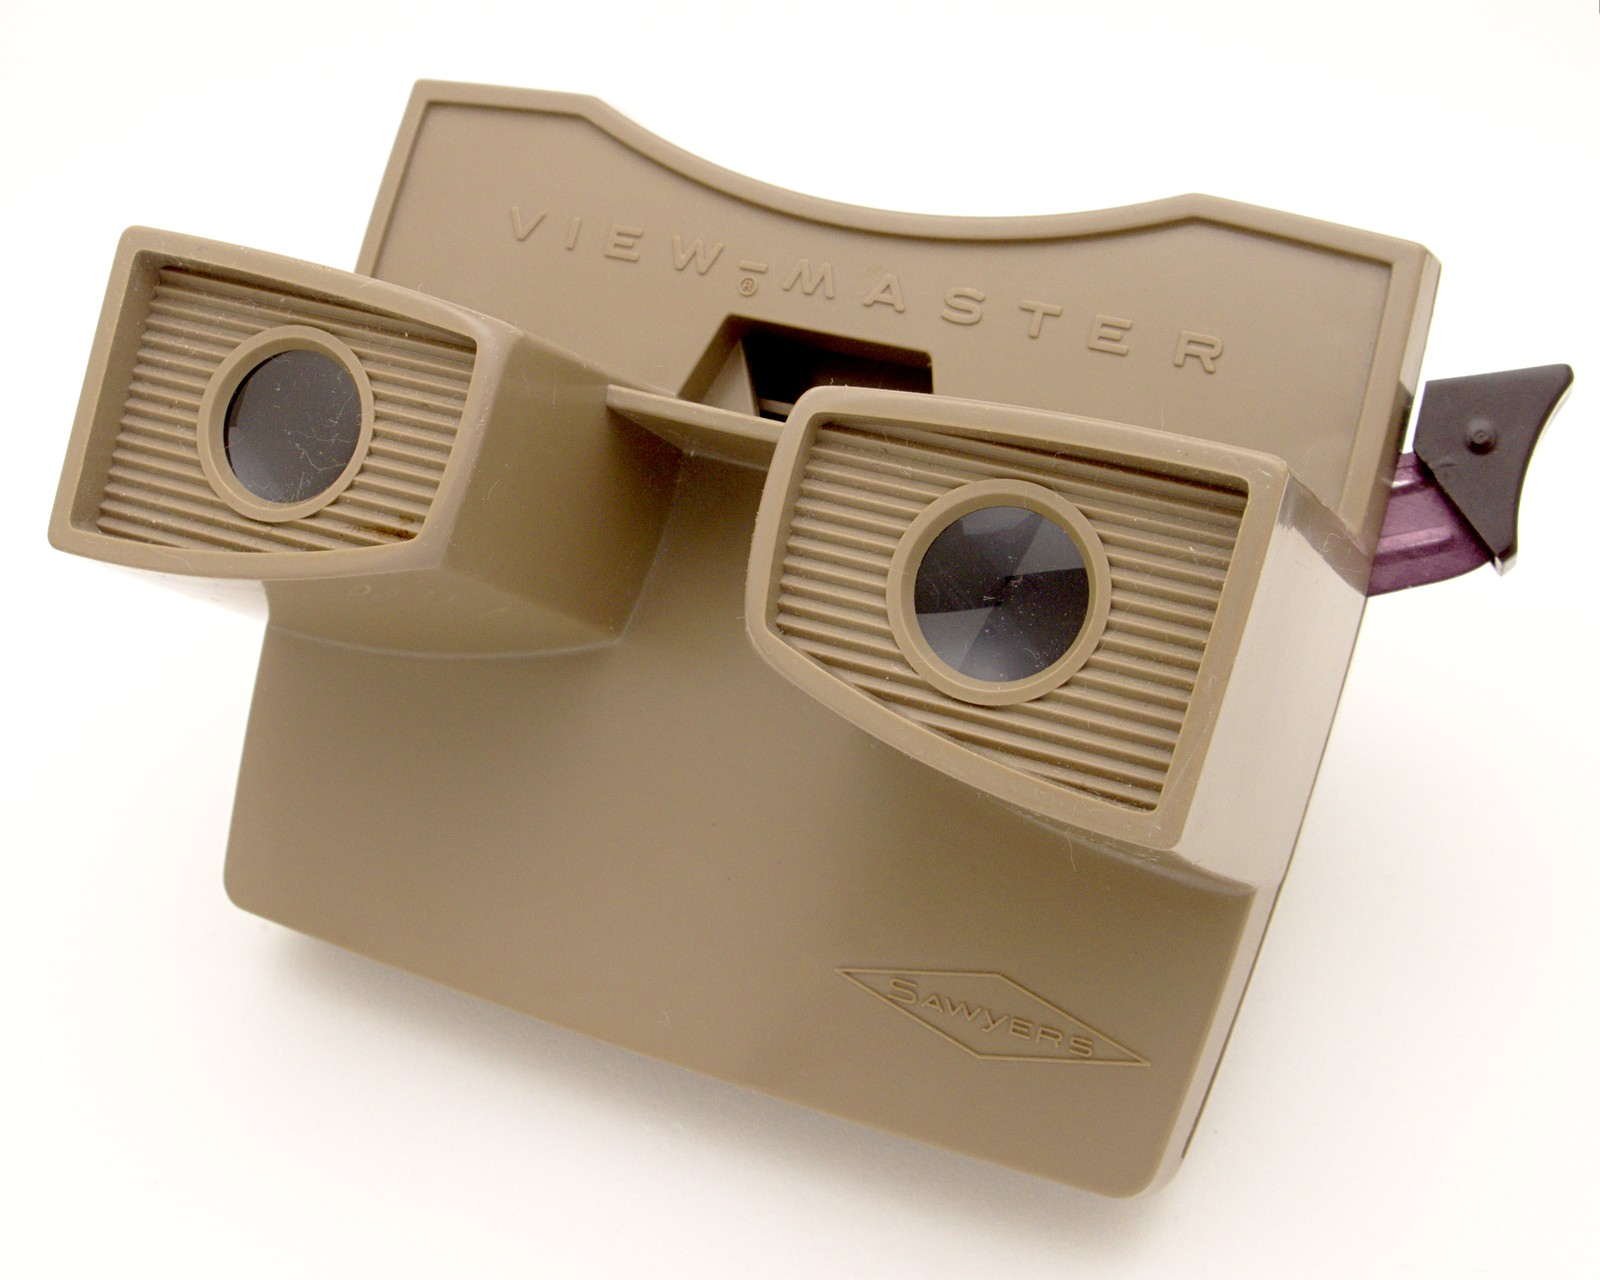 Viewmaster: one version of a Stereoscope